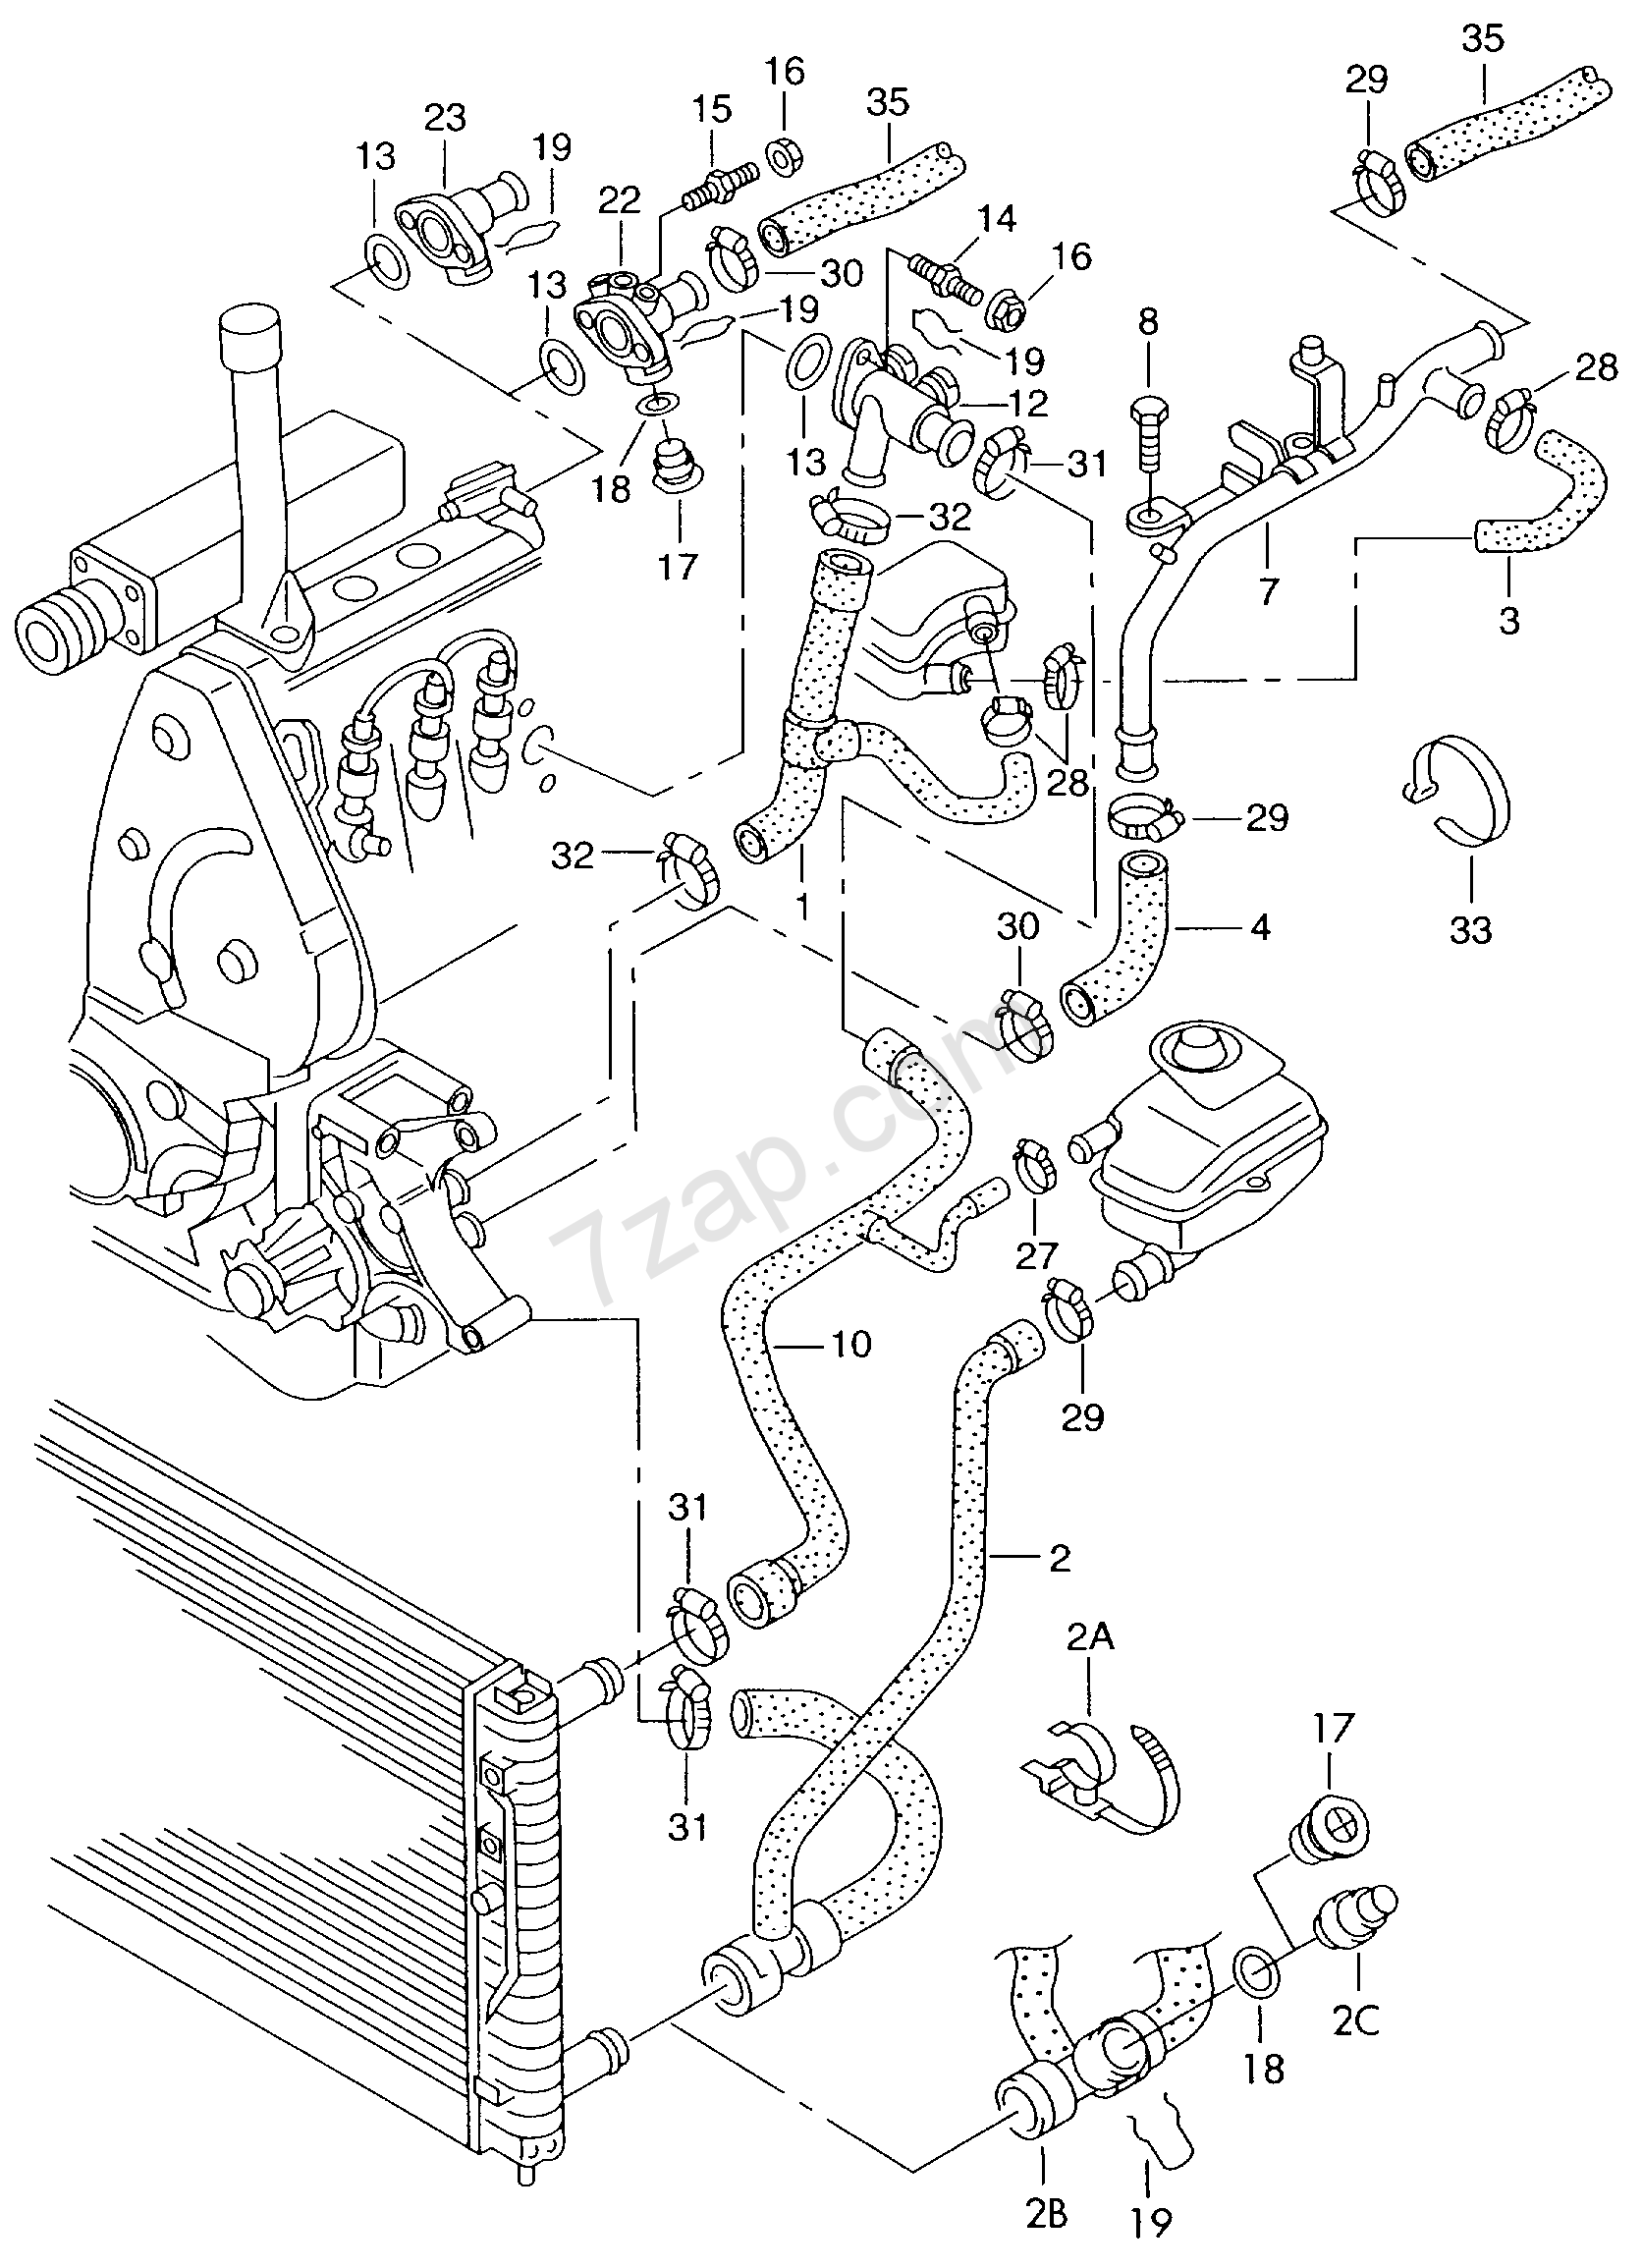 2000 Audi A6 Engine Diagram Cooling System Wiring Diagram Permanent A Permanent A Emilia Fise It